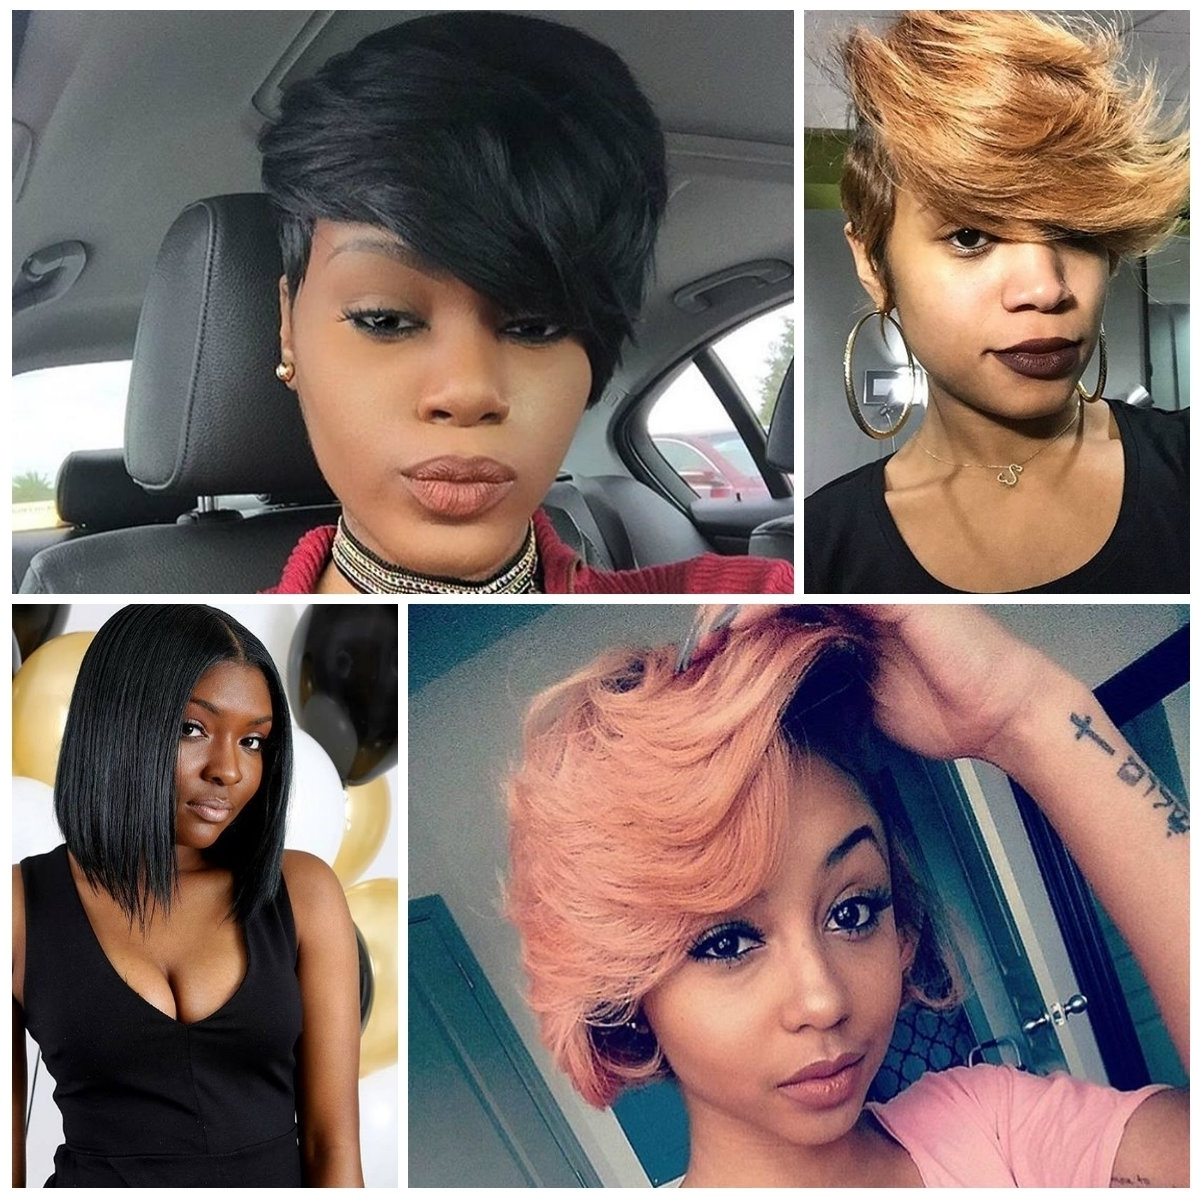 Pixie Hairstyle For Black Women 2017 Black Women Hairstyles In Newest Pixie Hairstyles For Black Women (View 14 of 15)